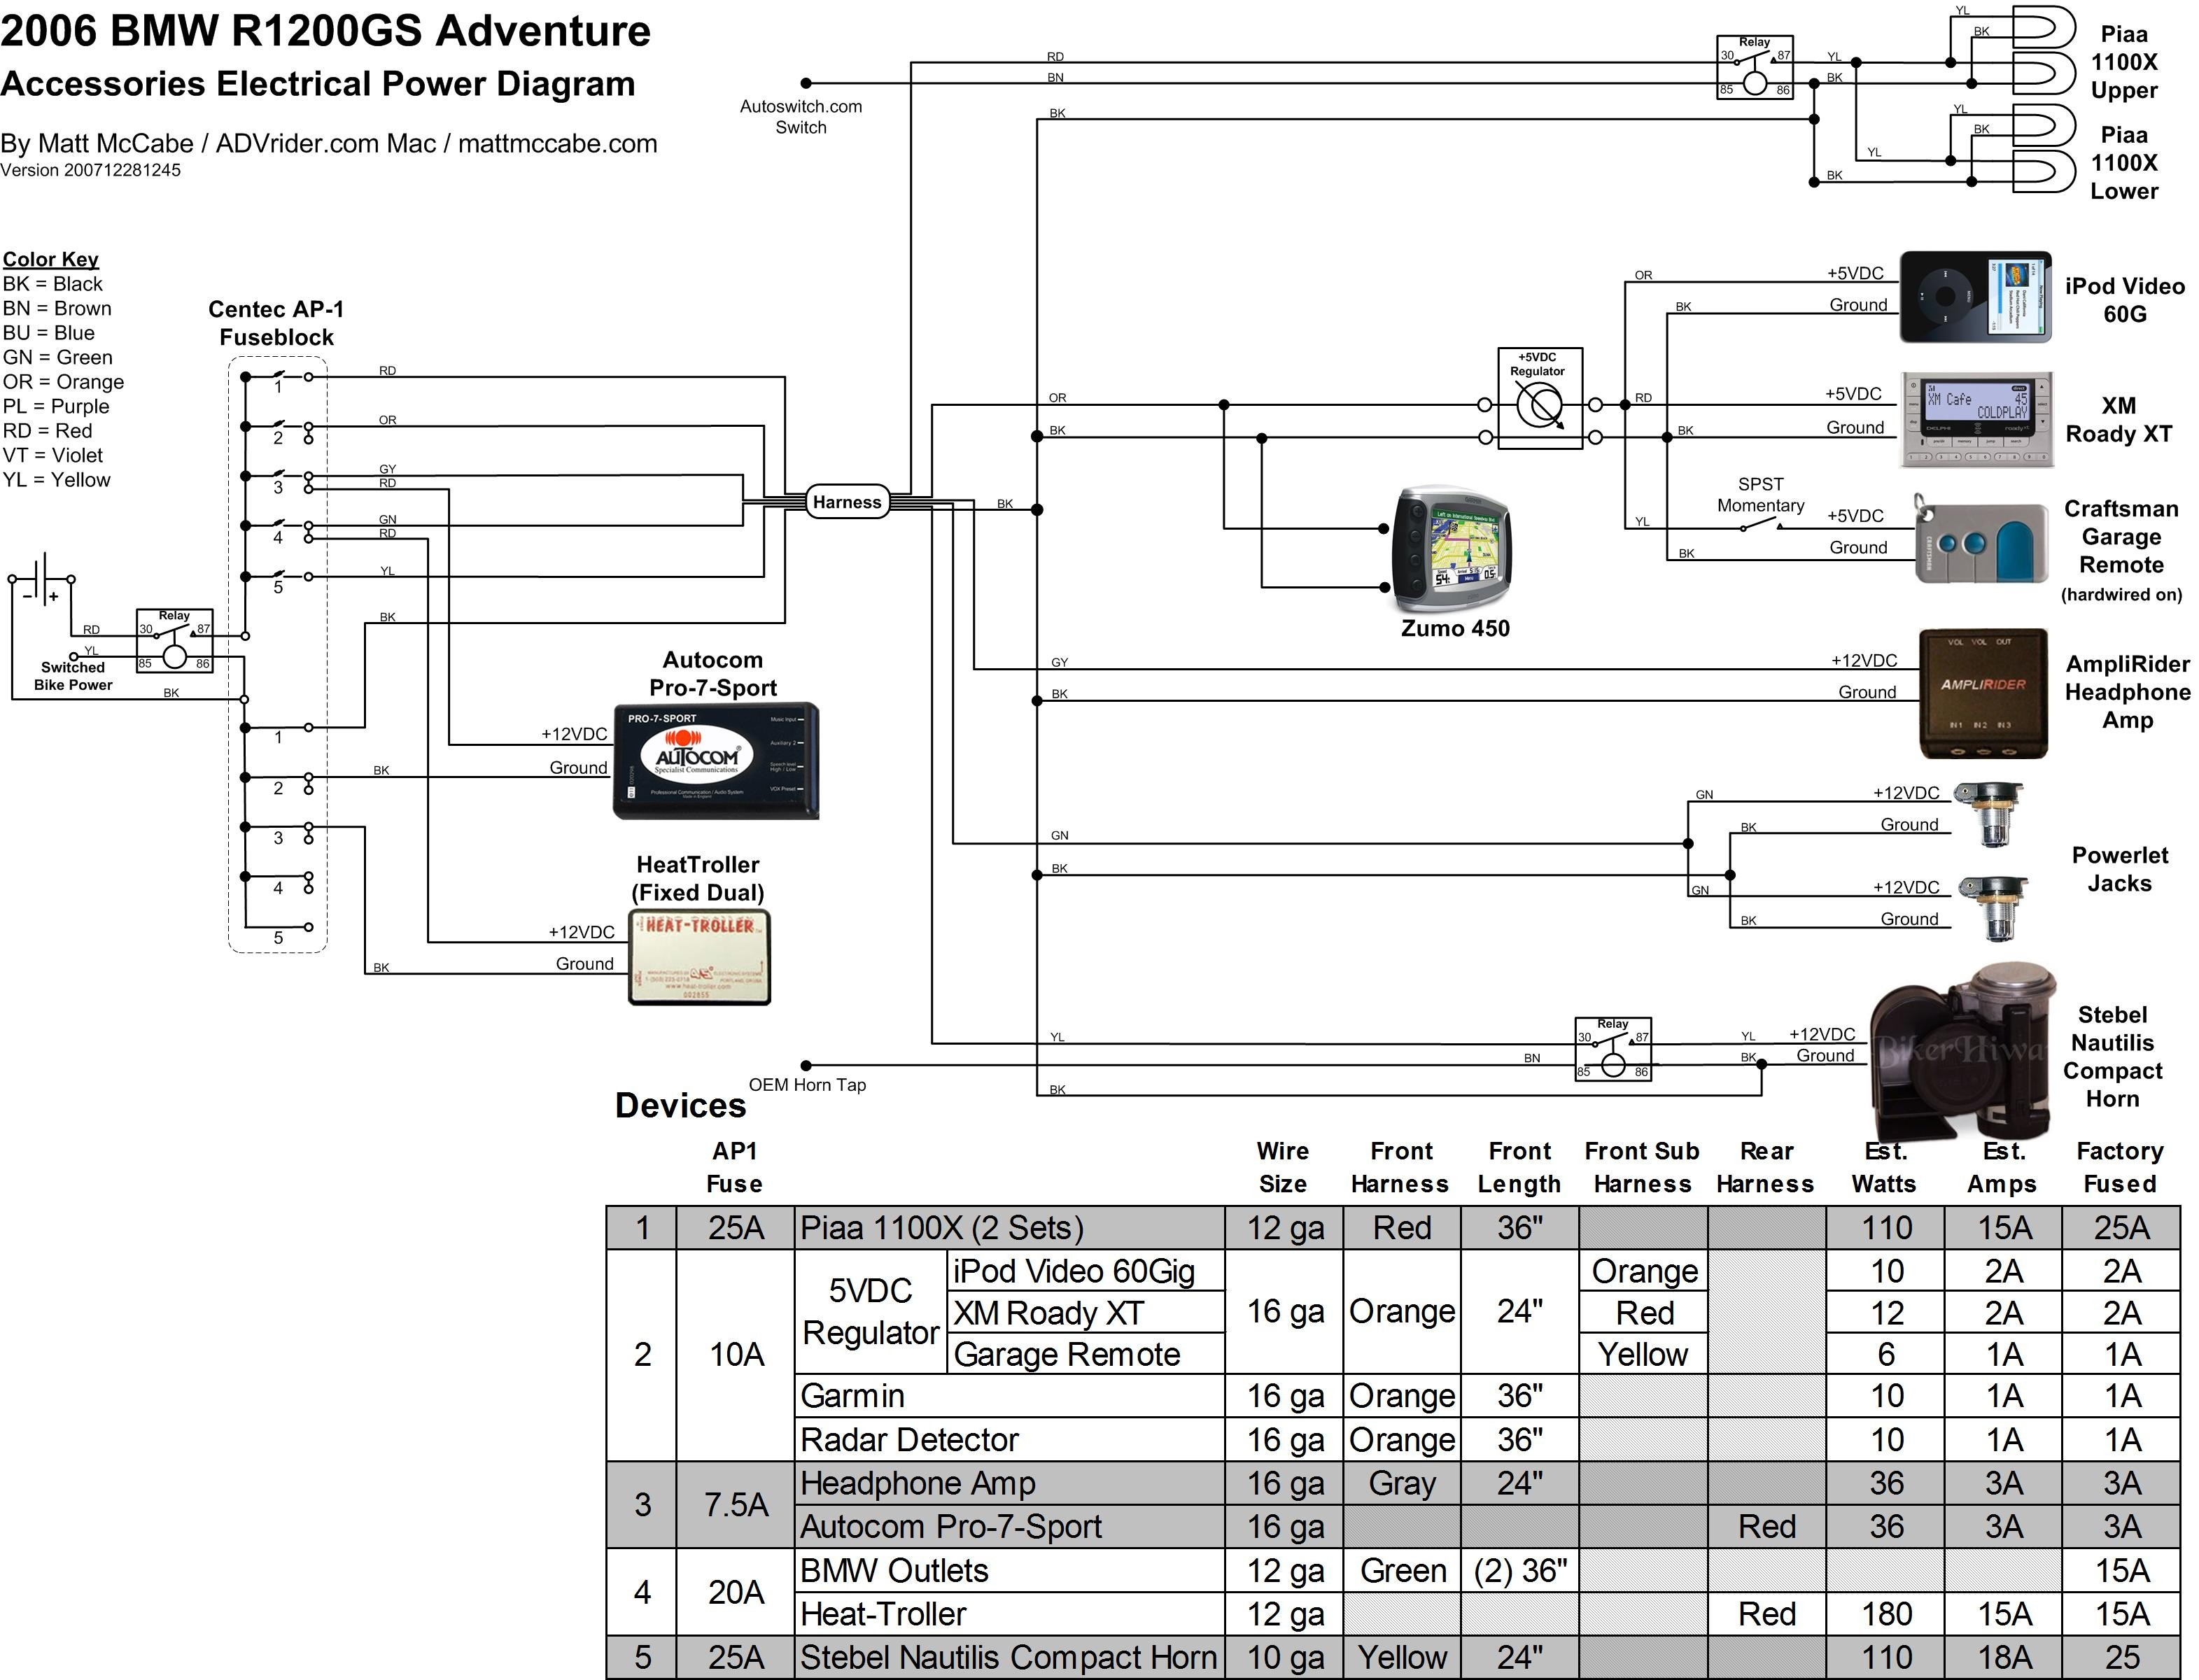 Garmin Transducer Wiring Diagram My Wiring DIagram